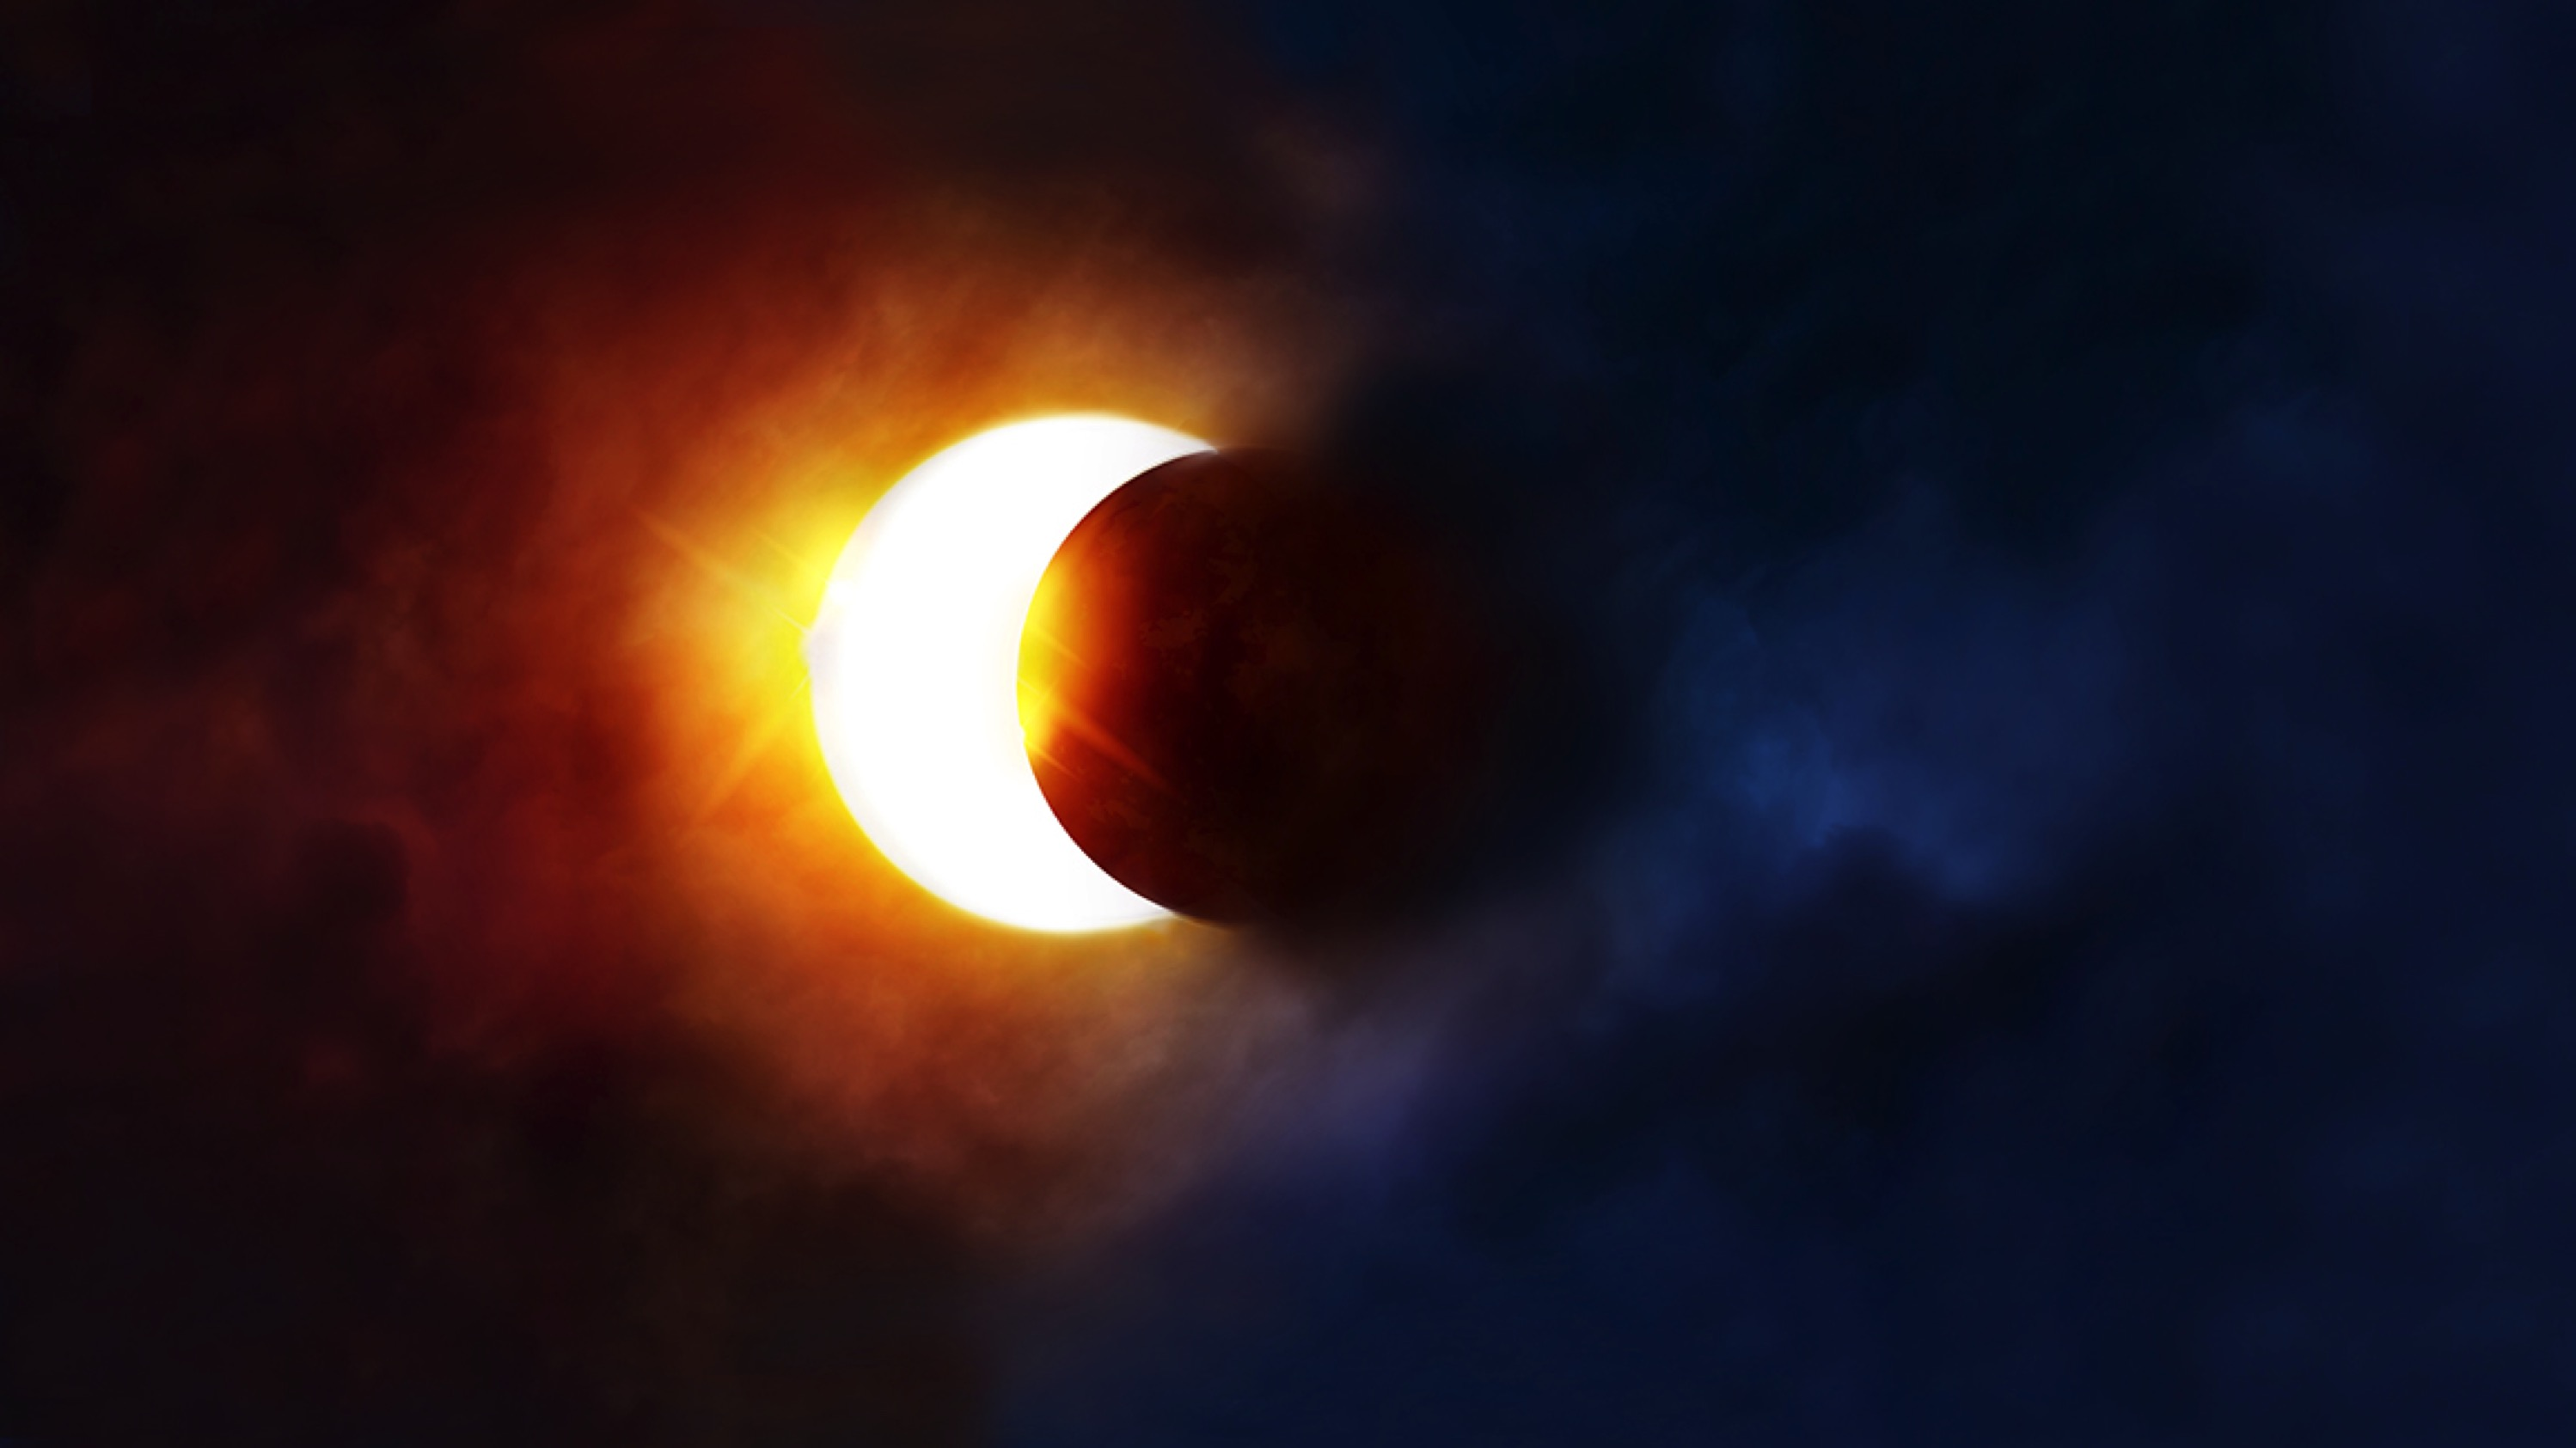 Solar eclipse in a porno rare